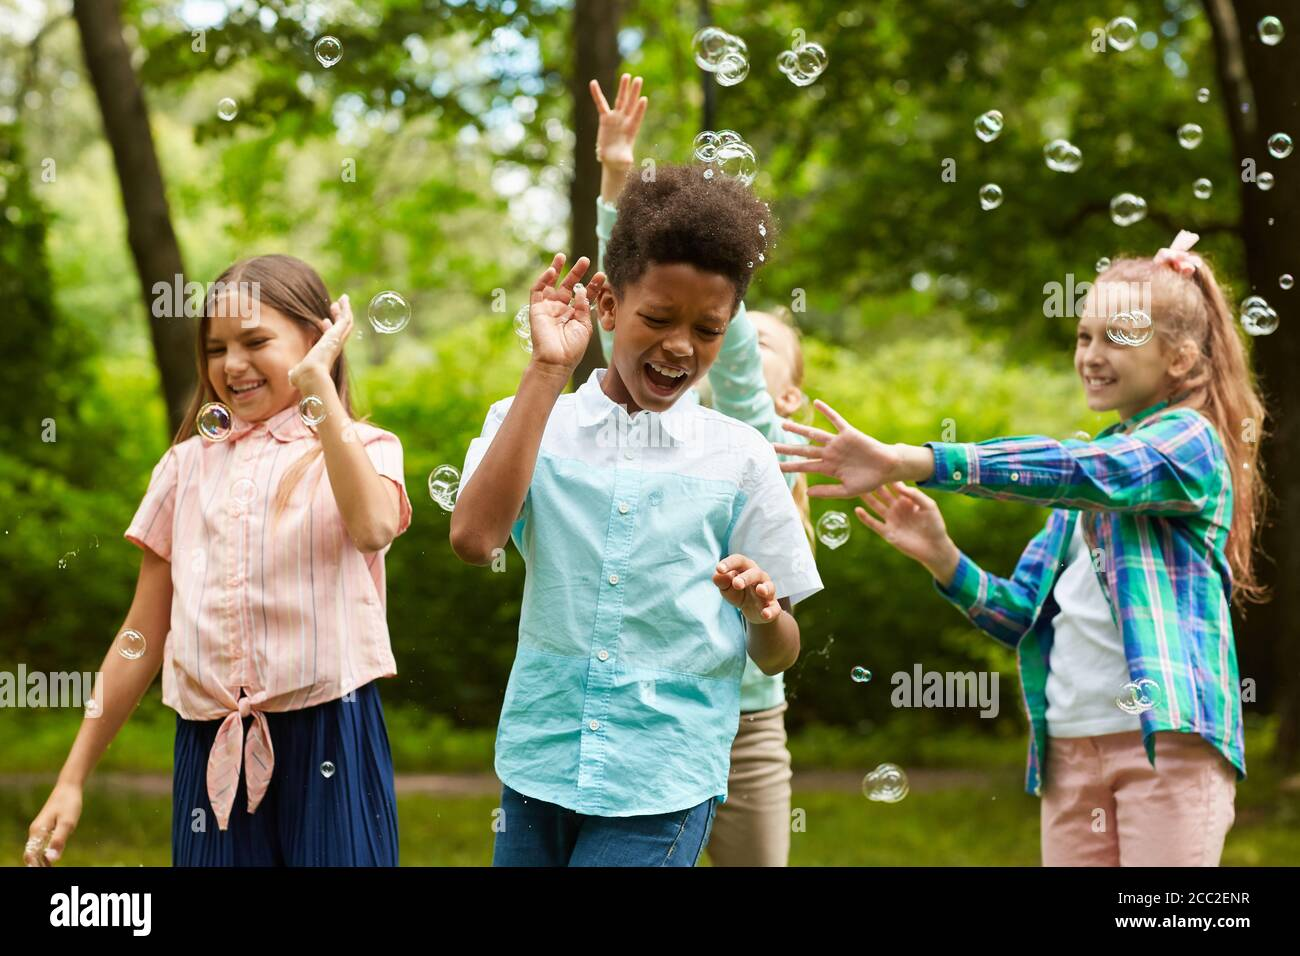 Waist up portrait of multi-ethnic group of carefree children playing with bubbles outdoors in park Stock Photo